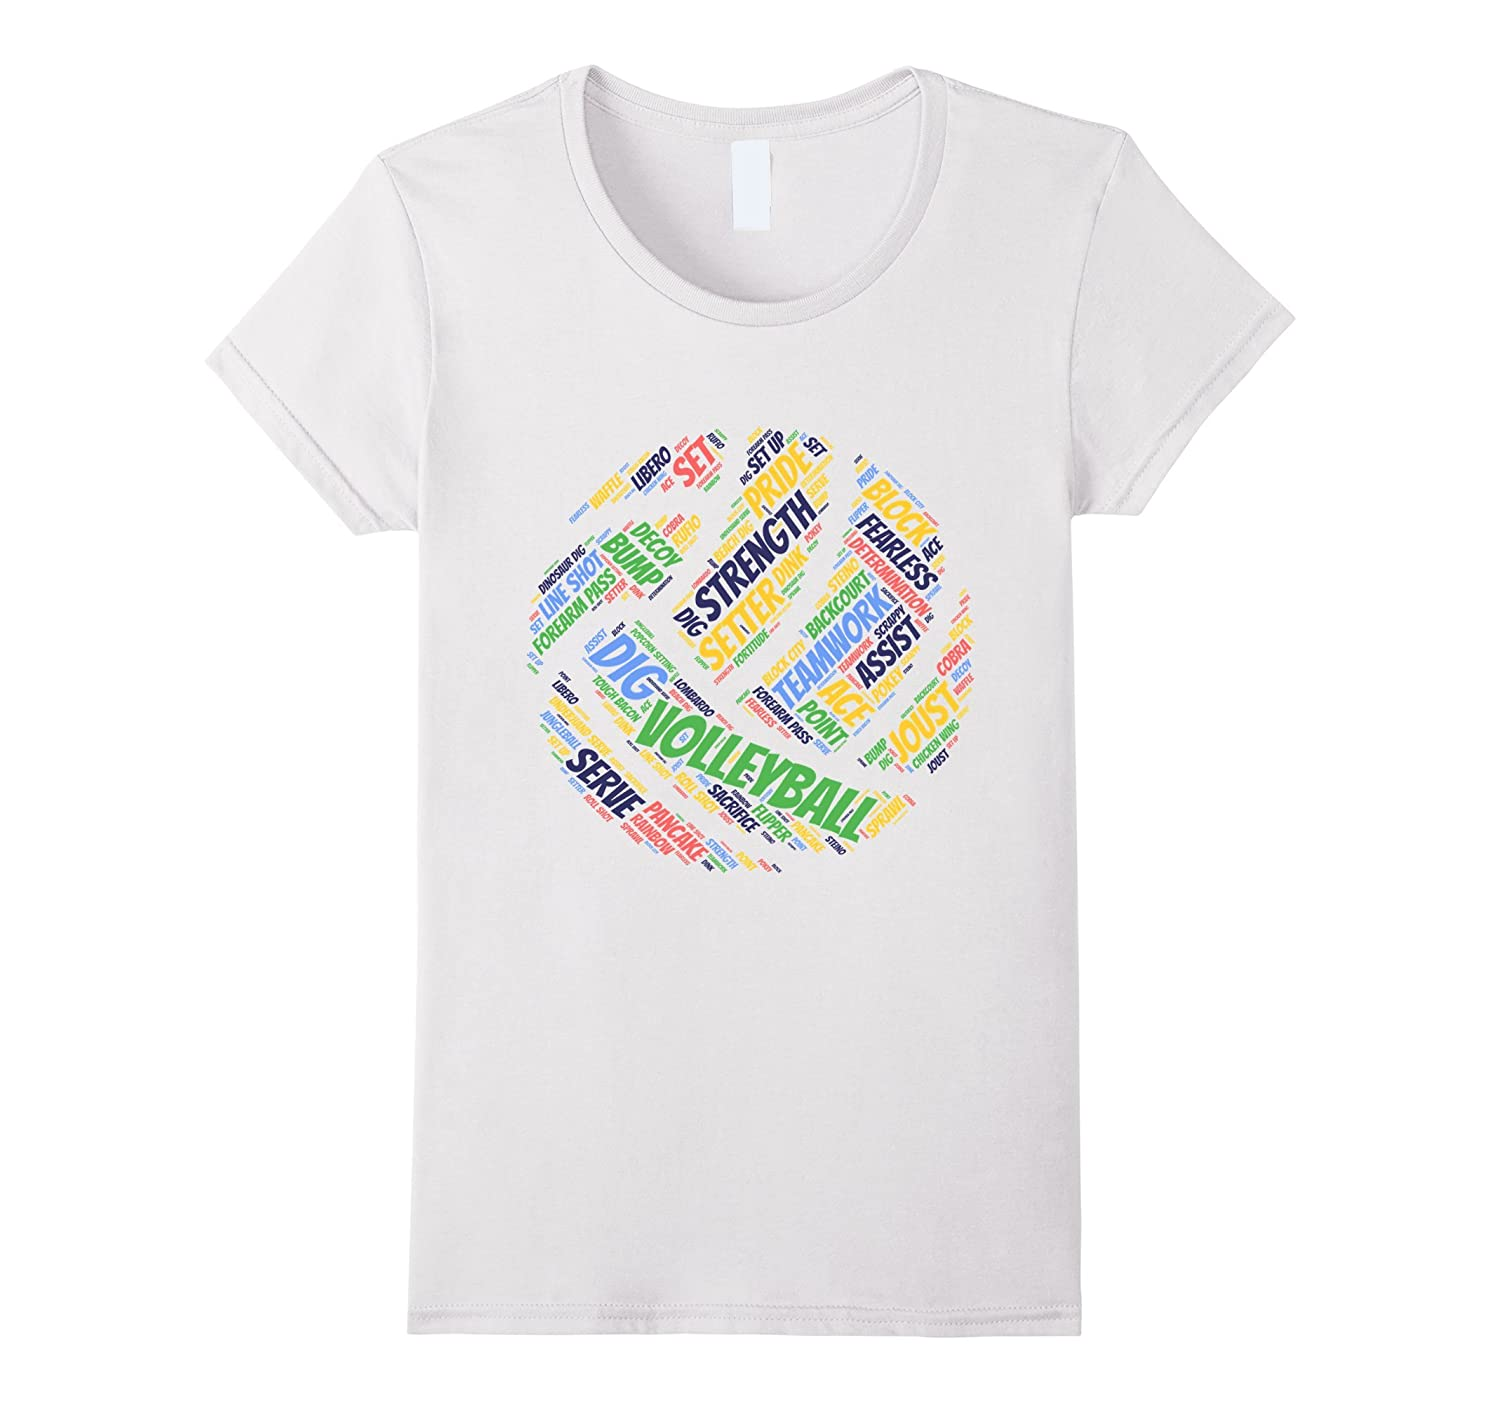 0d88d7e04a76 Happy colors Volleyball sayings shirt for teen girls & women-RT ...